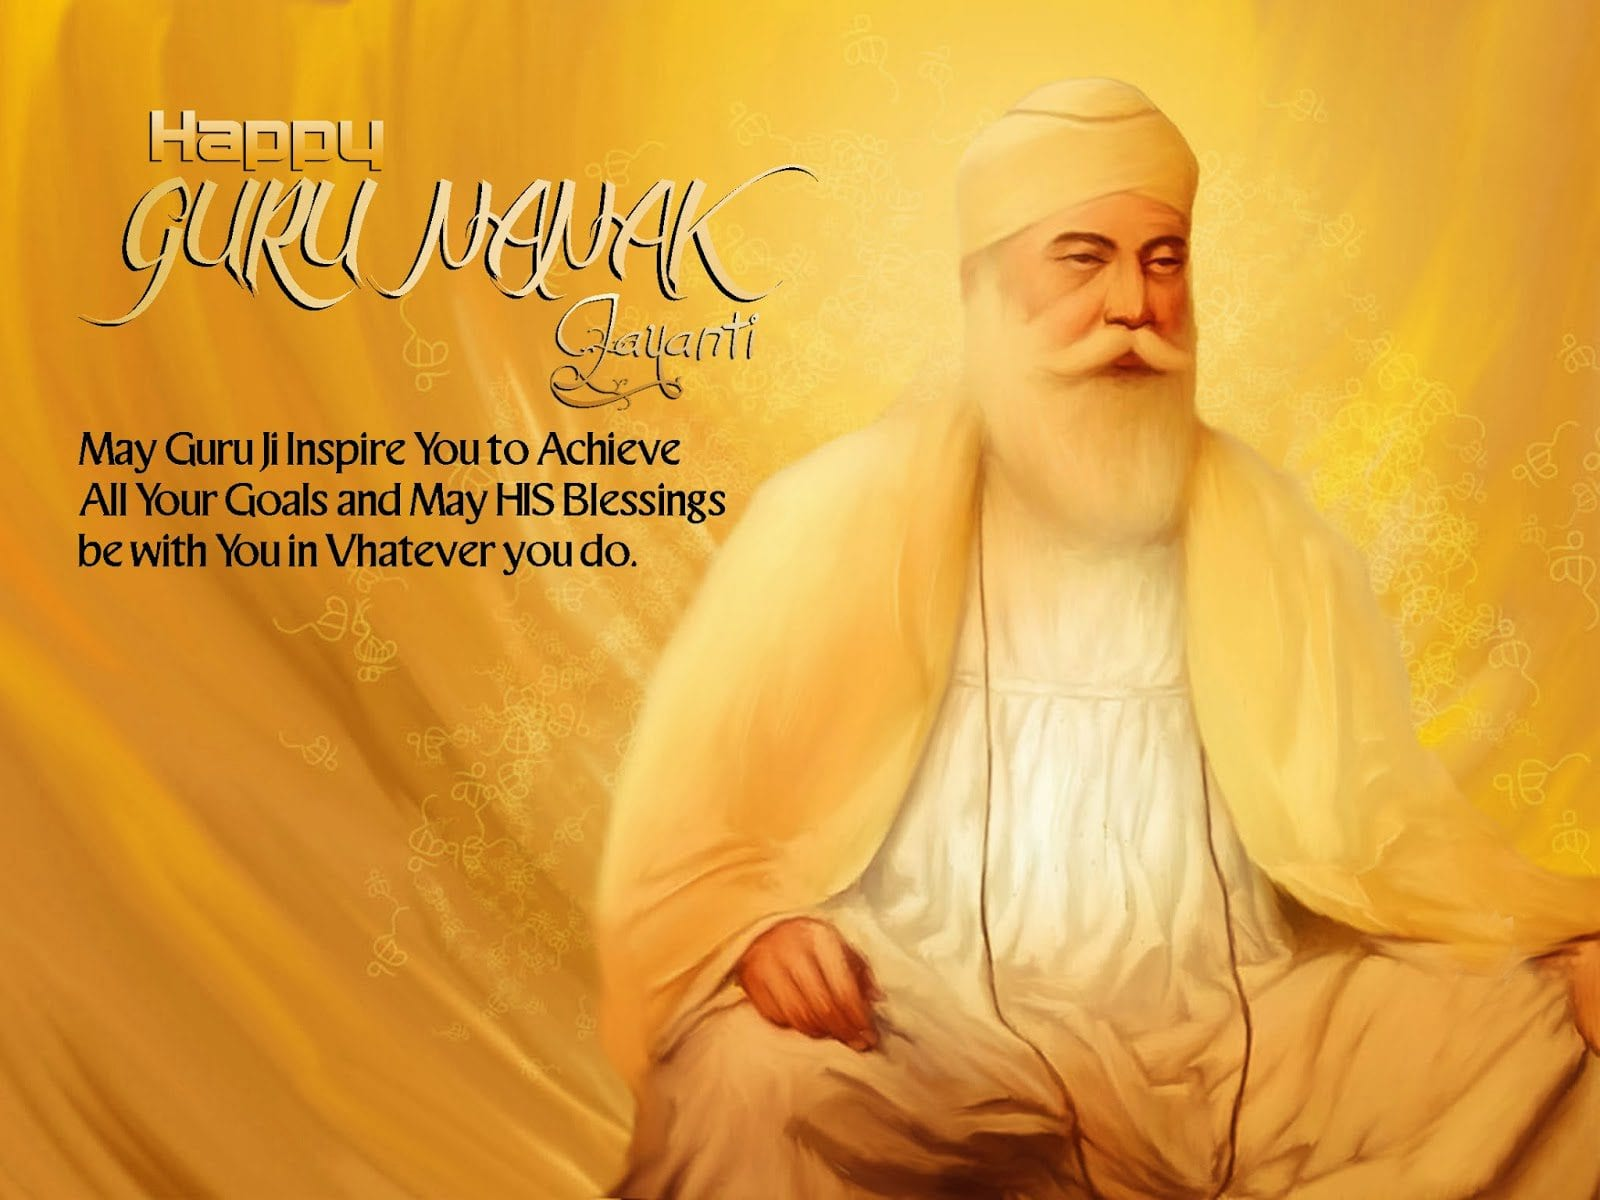 Guru-Nanak-Jayanti-SMS-and-Quote-Card-Wishes-Wallpaper-and-Greetings